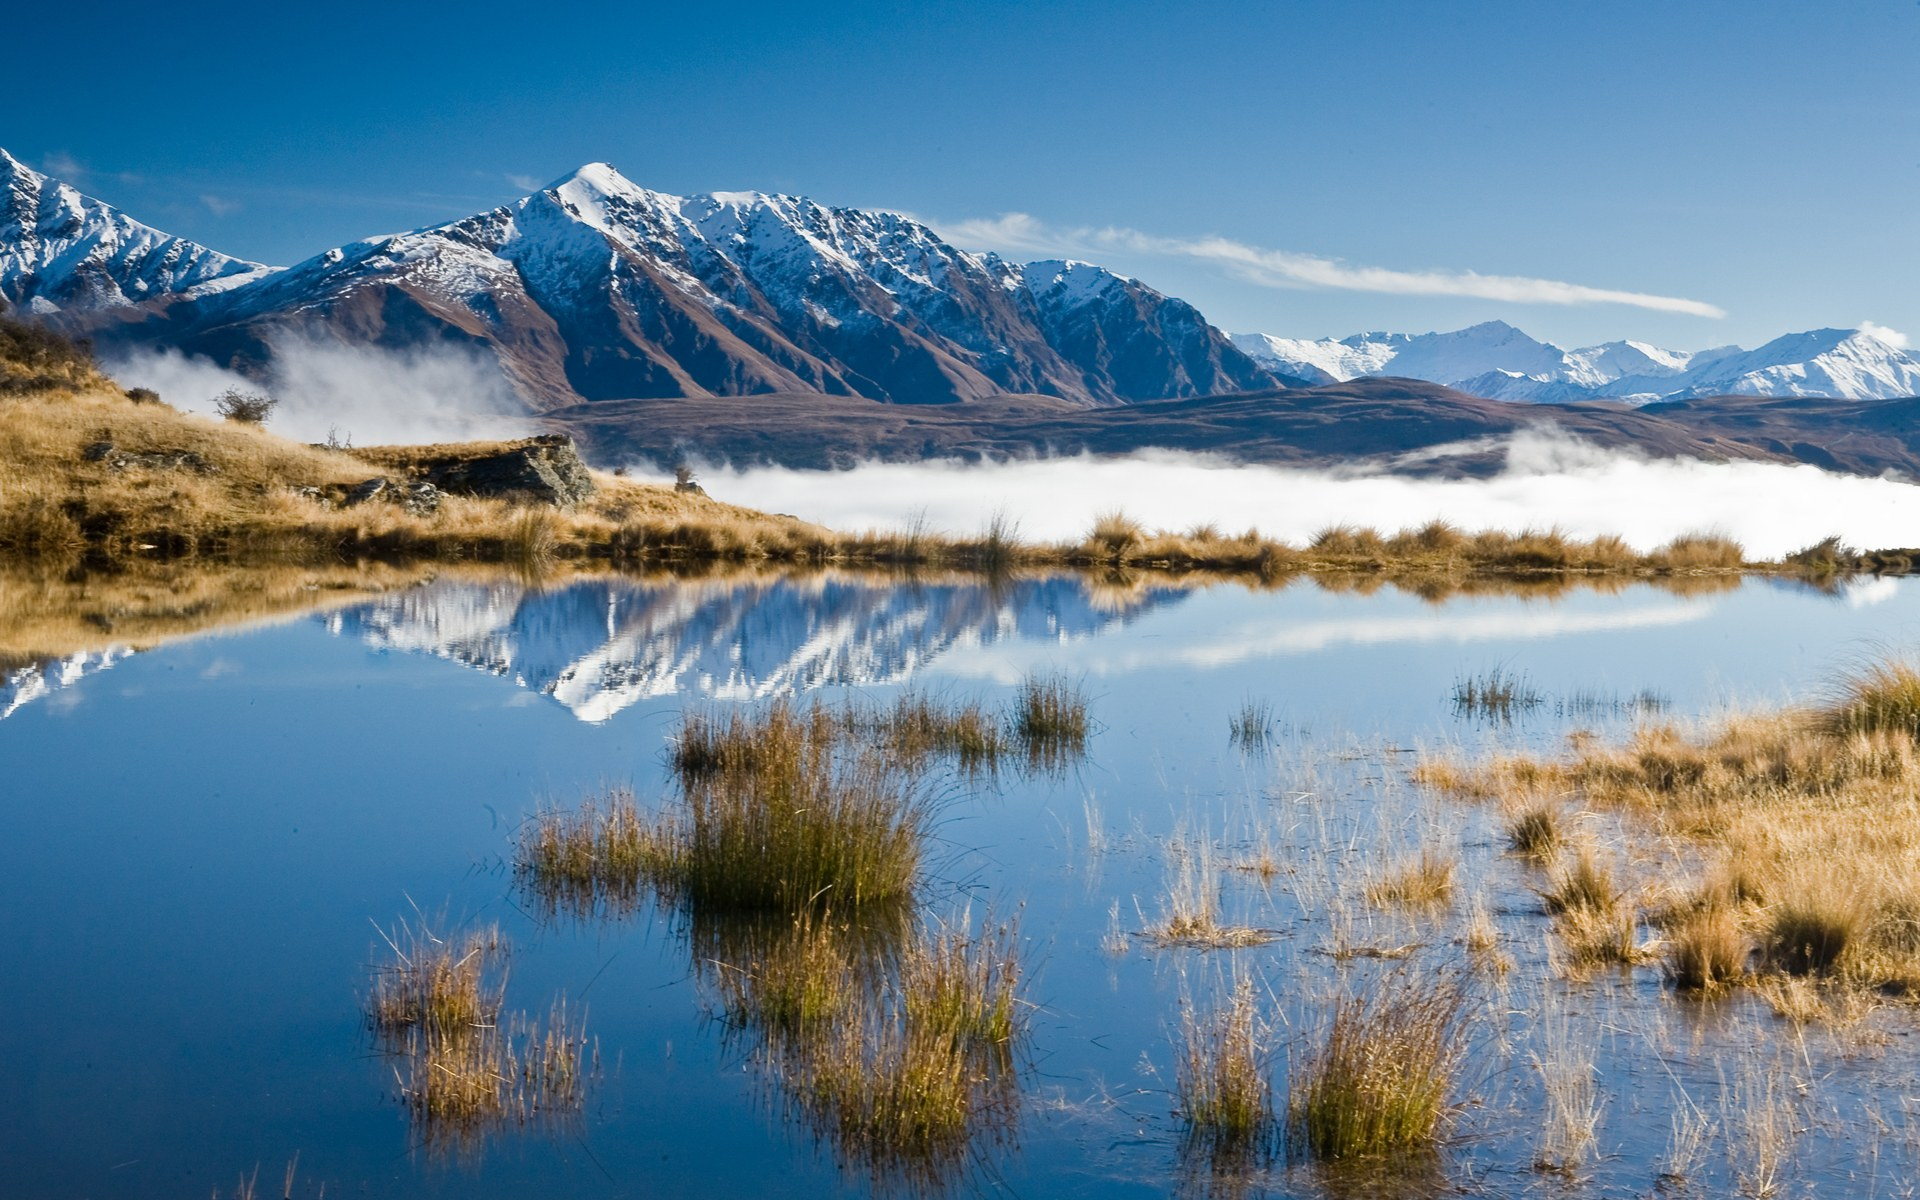 New Zealand is an beautiful island country located in the South Western part of the Pacific Ocean. The country geographically comprises of two main ...